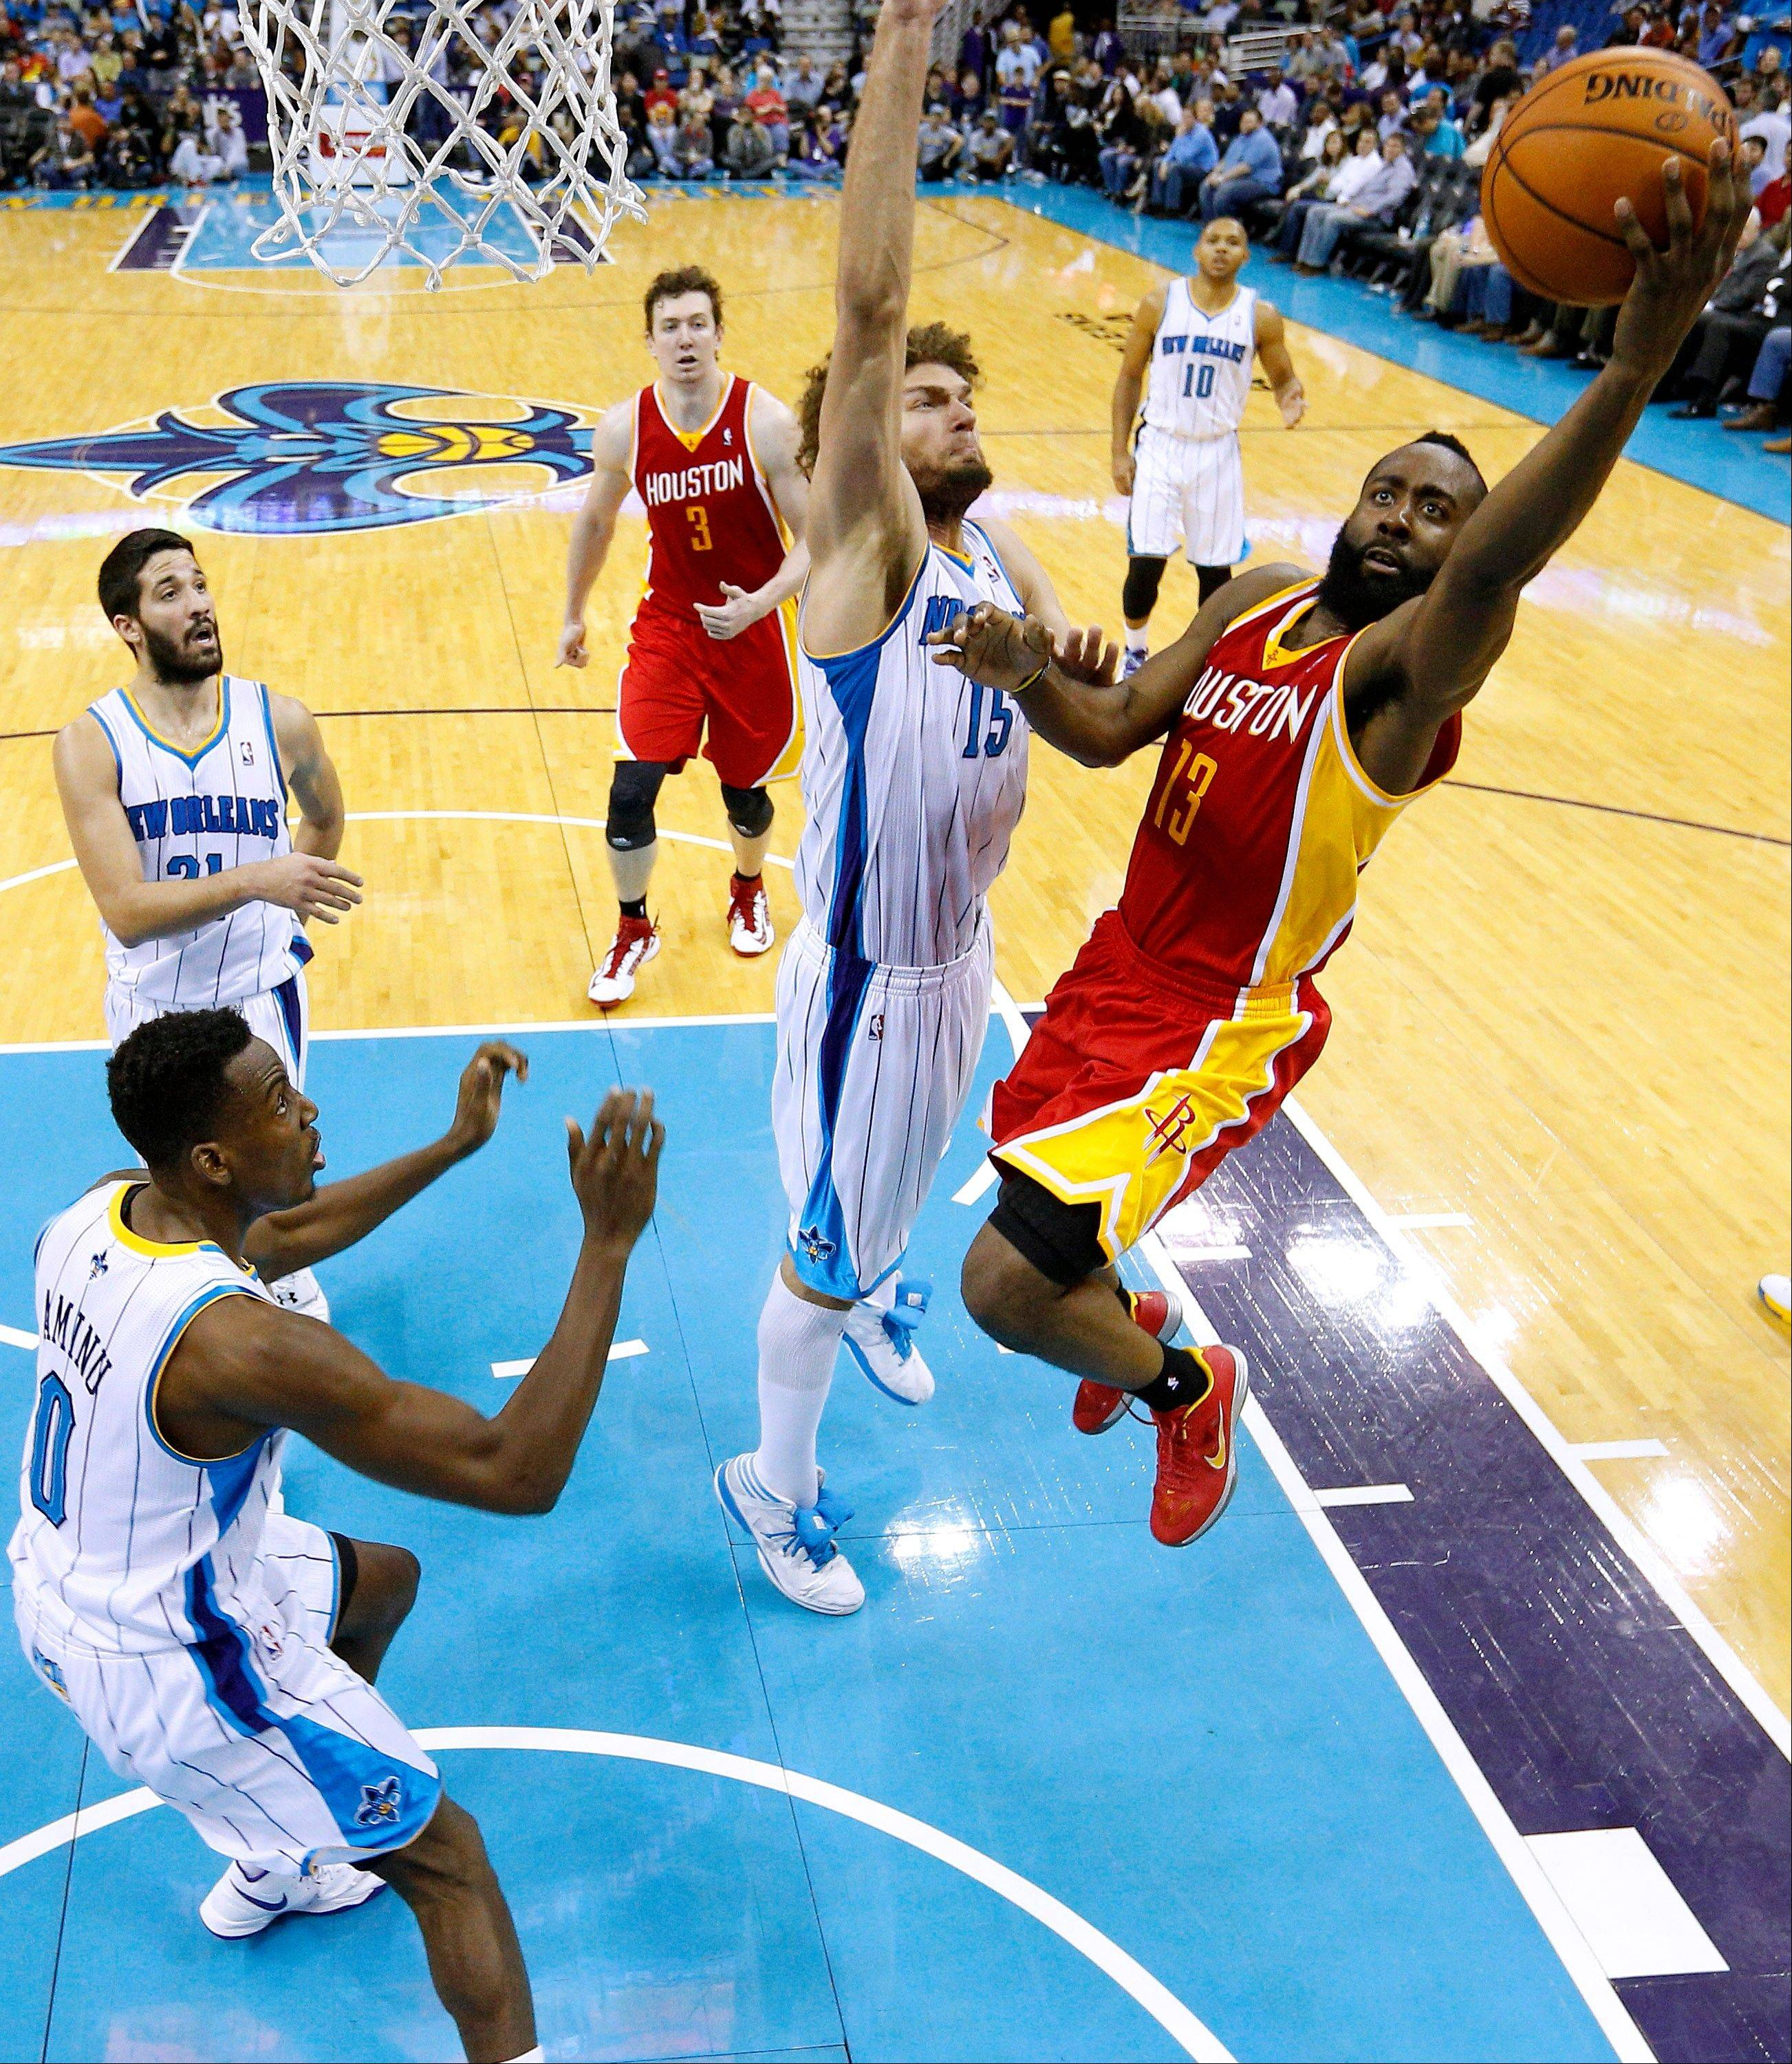 Houston Rockets shooting guard James Harden (13) goes to the basket against New Orleans Hornets center Robin Lopez (15) during the second half of an NBA basketball game Wednesday in New Orleans. The Hornets won 88-79.